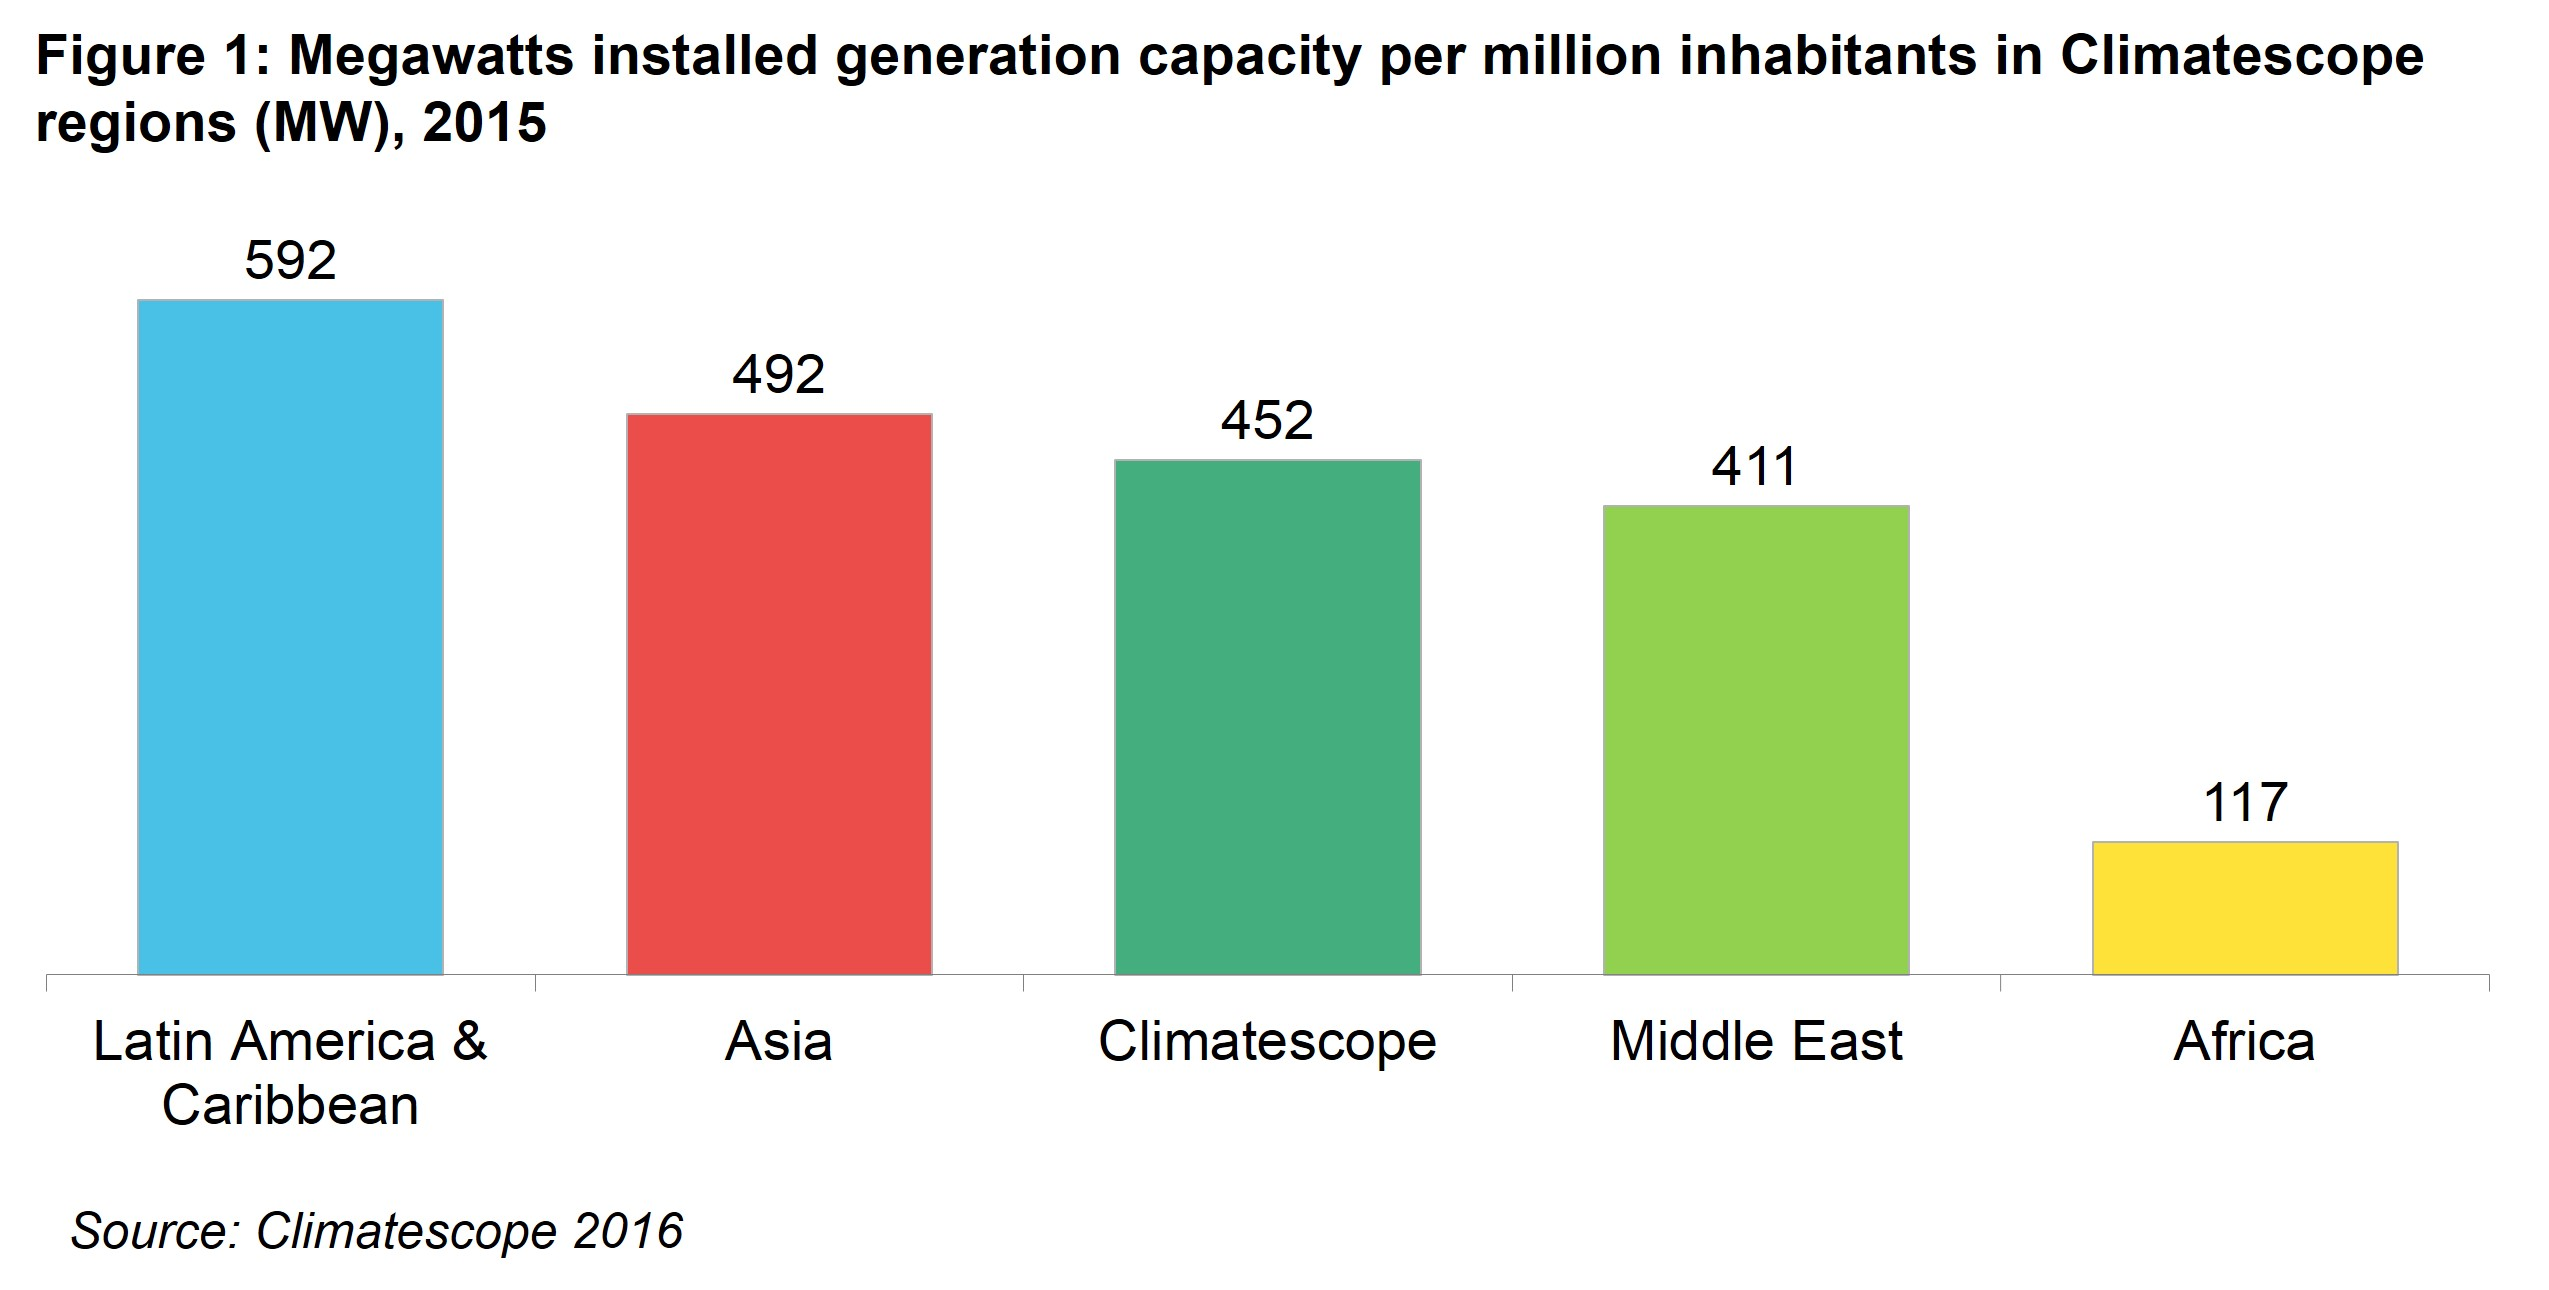 AM Fig 1 - Megawatts installed generation capacity per million inhabitants in Climatescope regions (MW), 2015